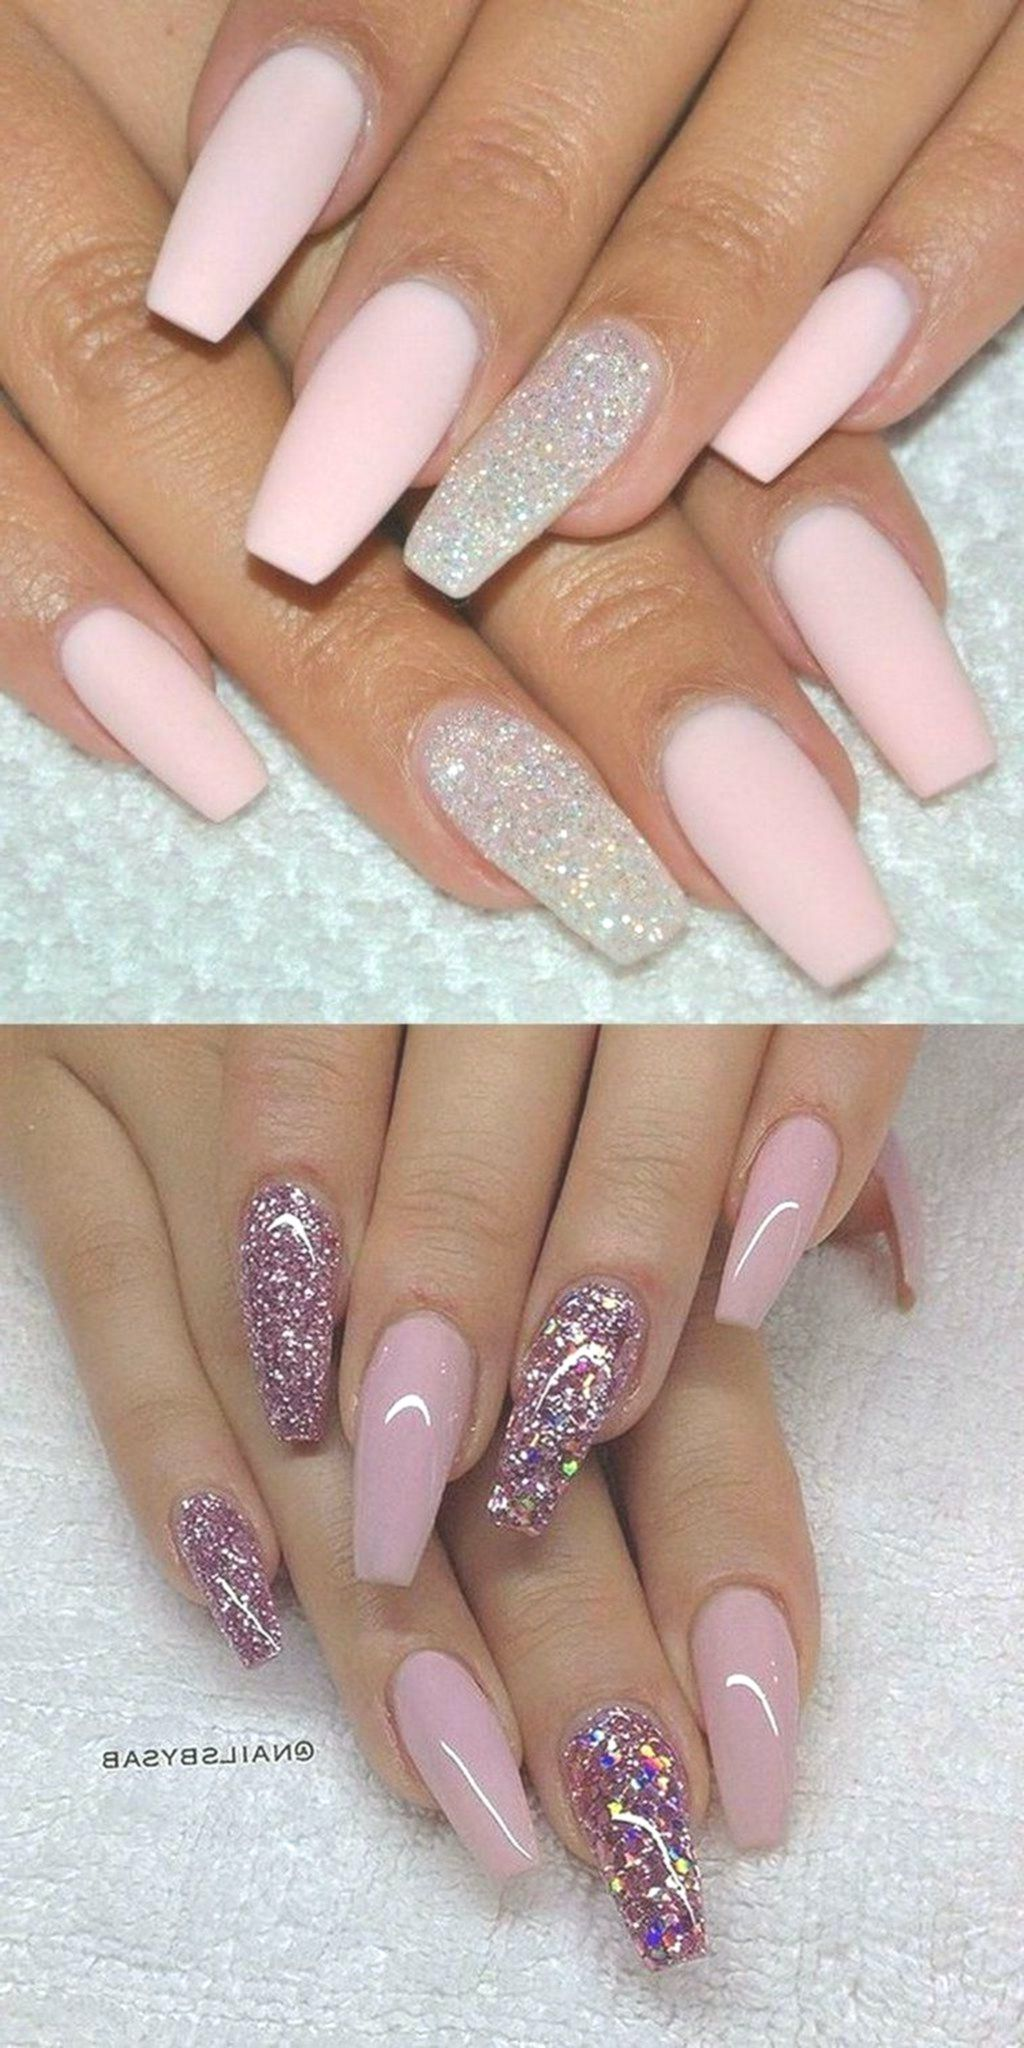 Acrylic Nails Designs Valentines Day Beautiful Provocative And Long Nails Are The Dream Of Many Women But Not All Of T Pink Nail Art 2016 Nails Trends Nails